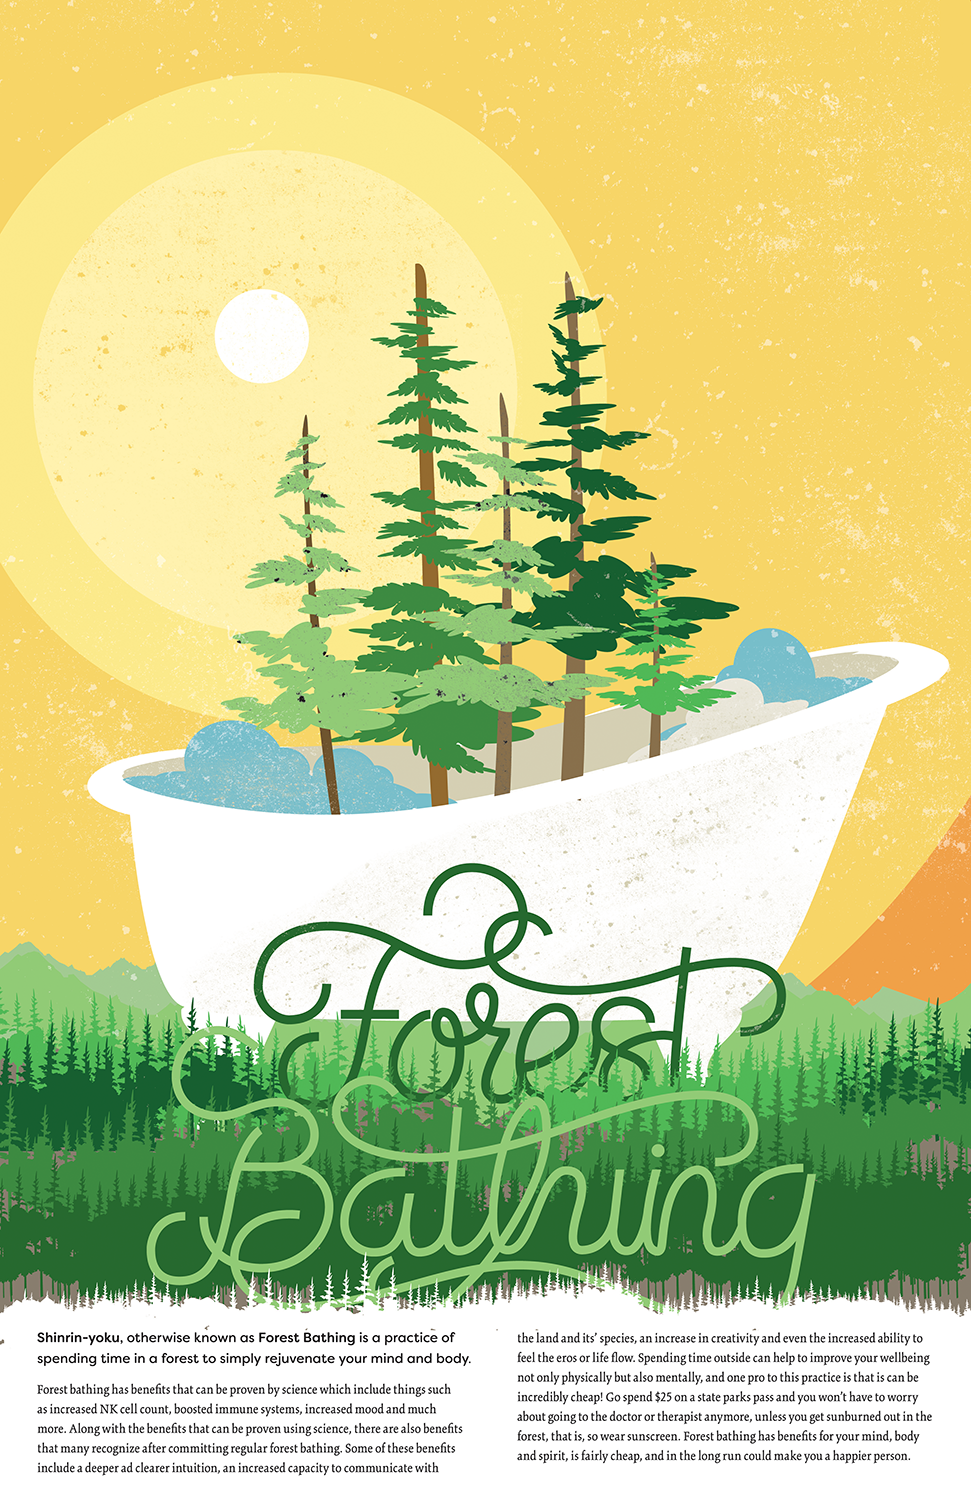 Forest Bathing - A poster created as part of a Zine detailing the ideals behind Forest Bathing